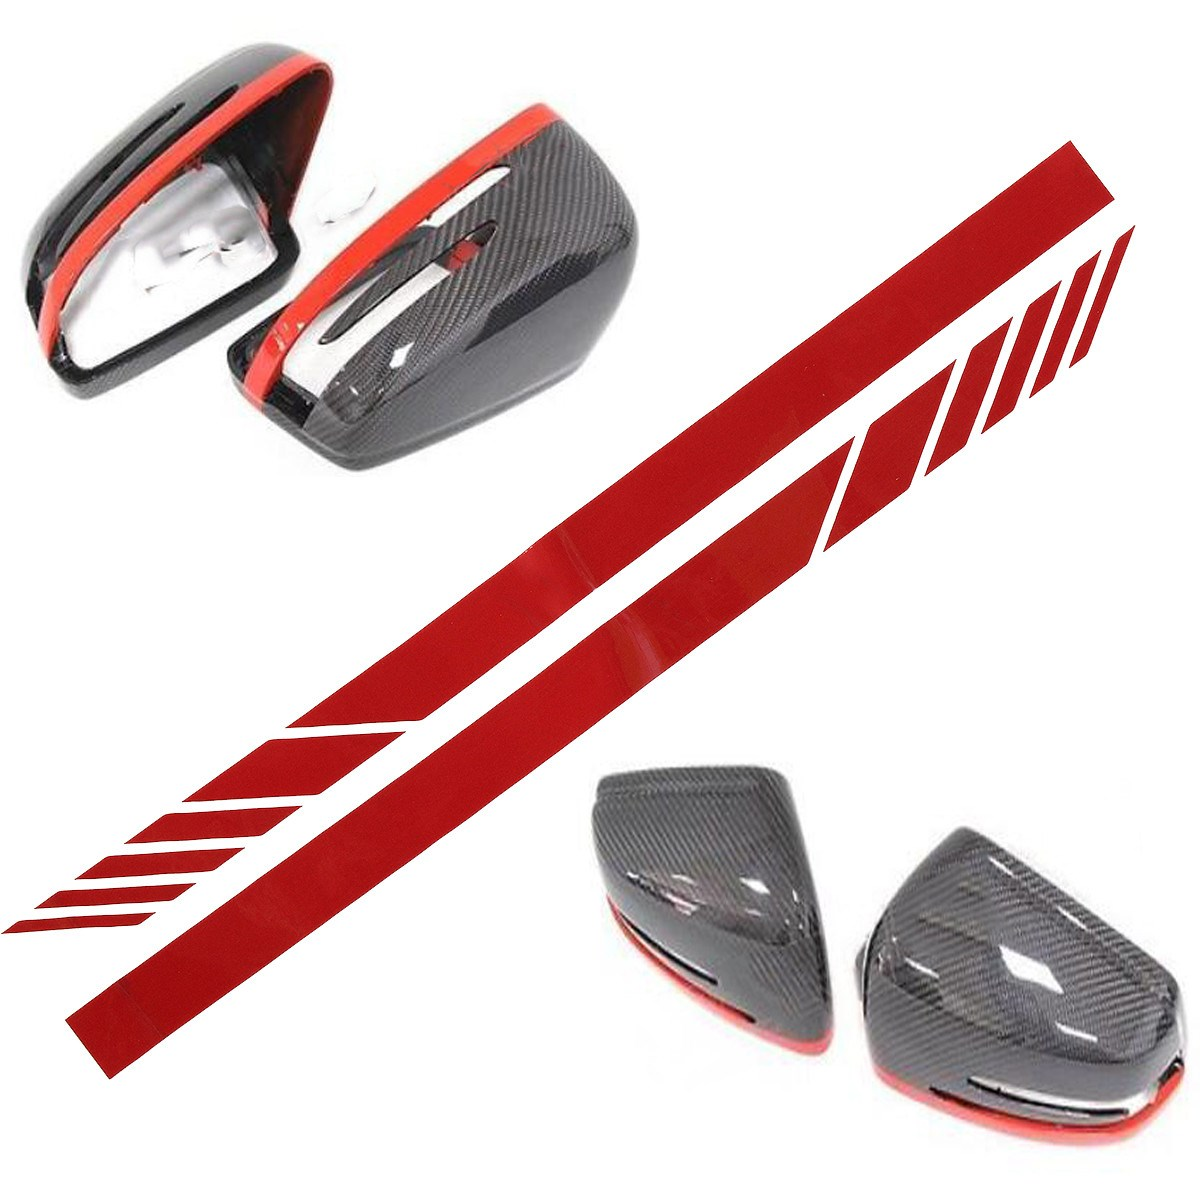 1pair Car Rear View Mirror Stripe Decal Sticker Vinyl For Benz W204 W212 W117 W176 Editi ...